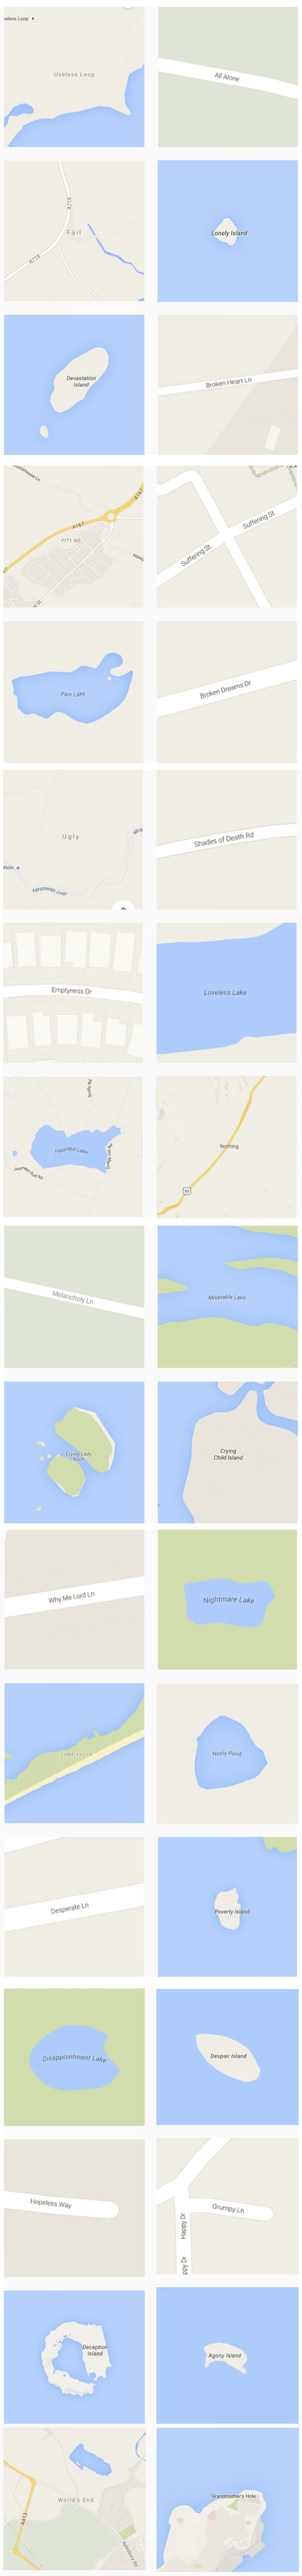 The world's saddest places on Google Maps